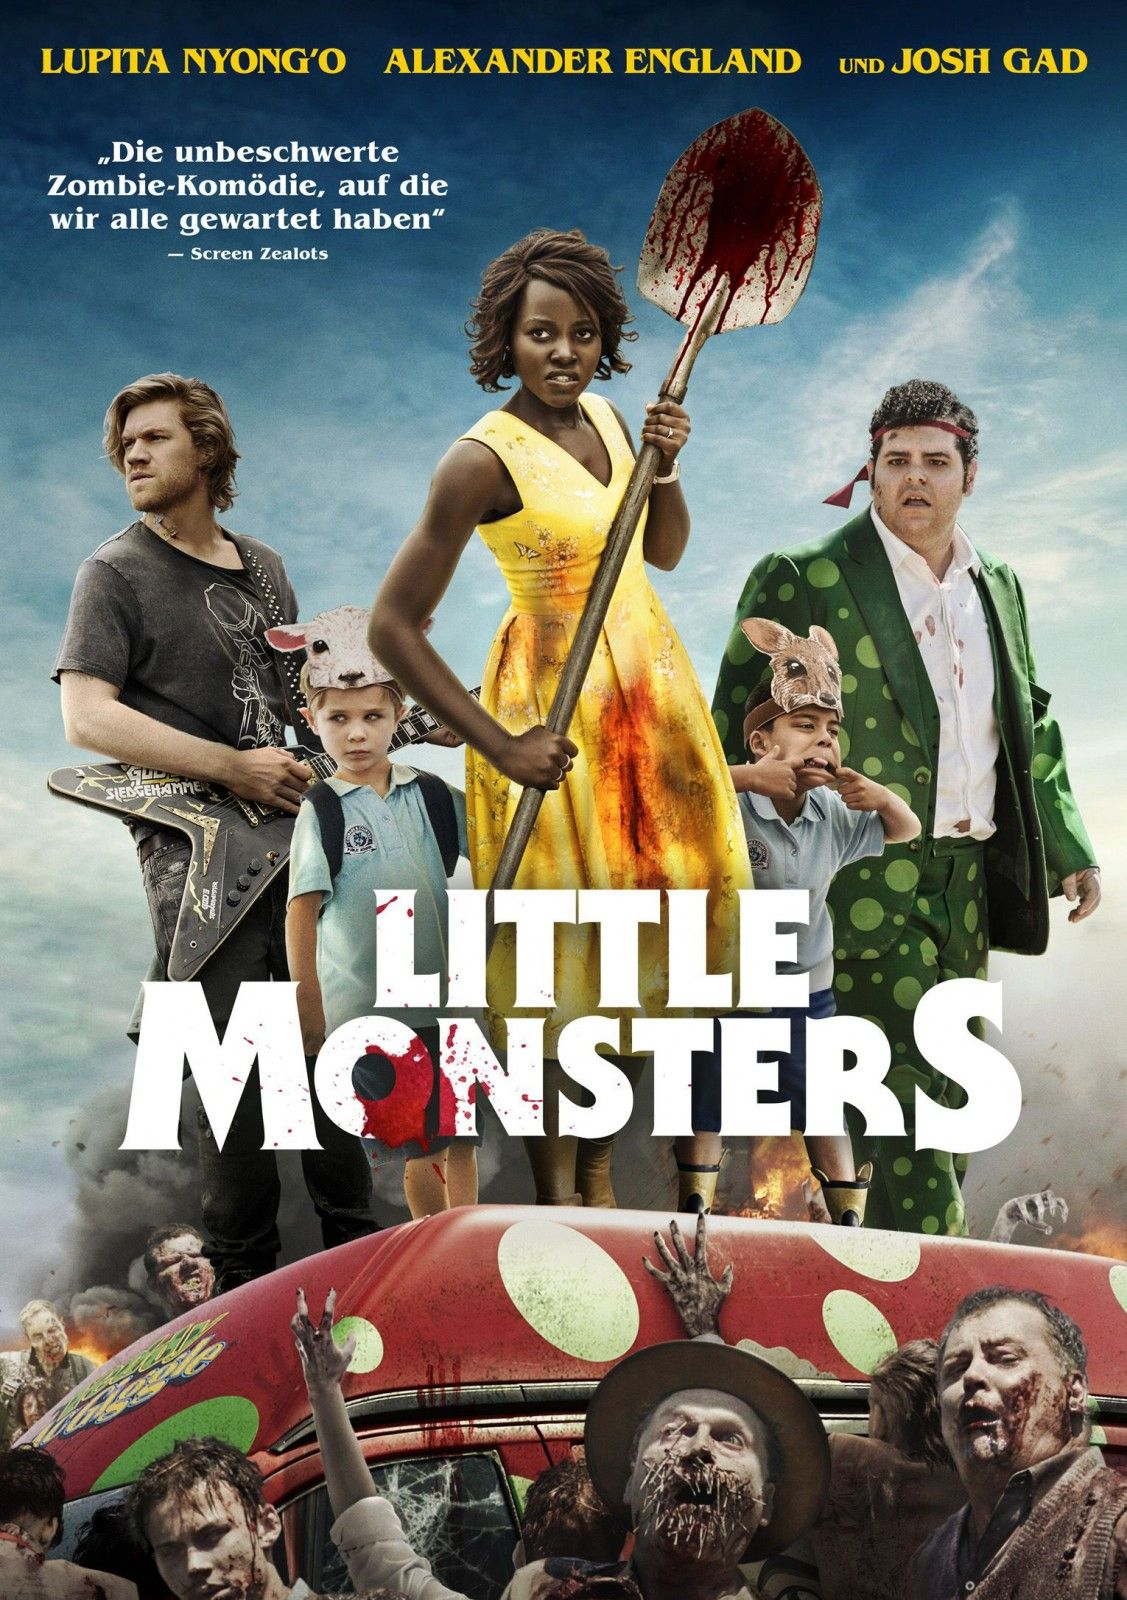 Little Monsters 2019 Dual Audio Hindi Dubbed Little Monsters 2019